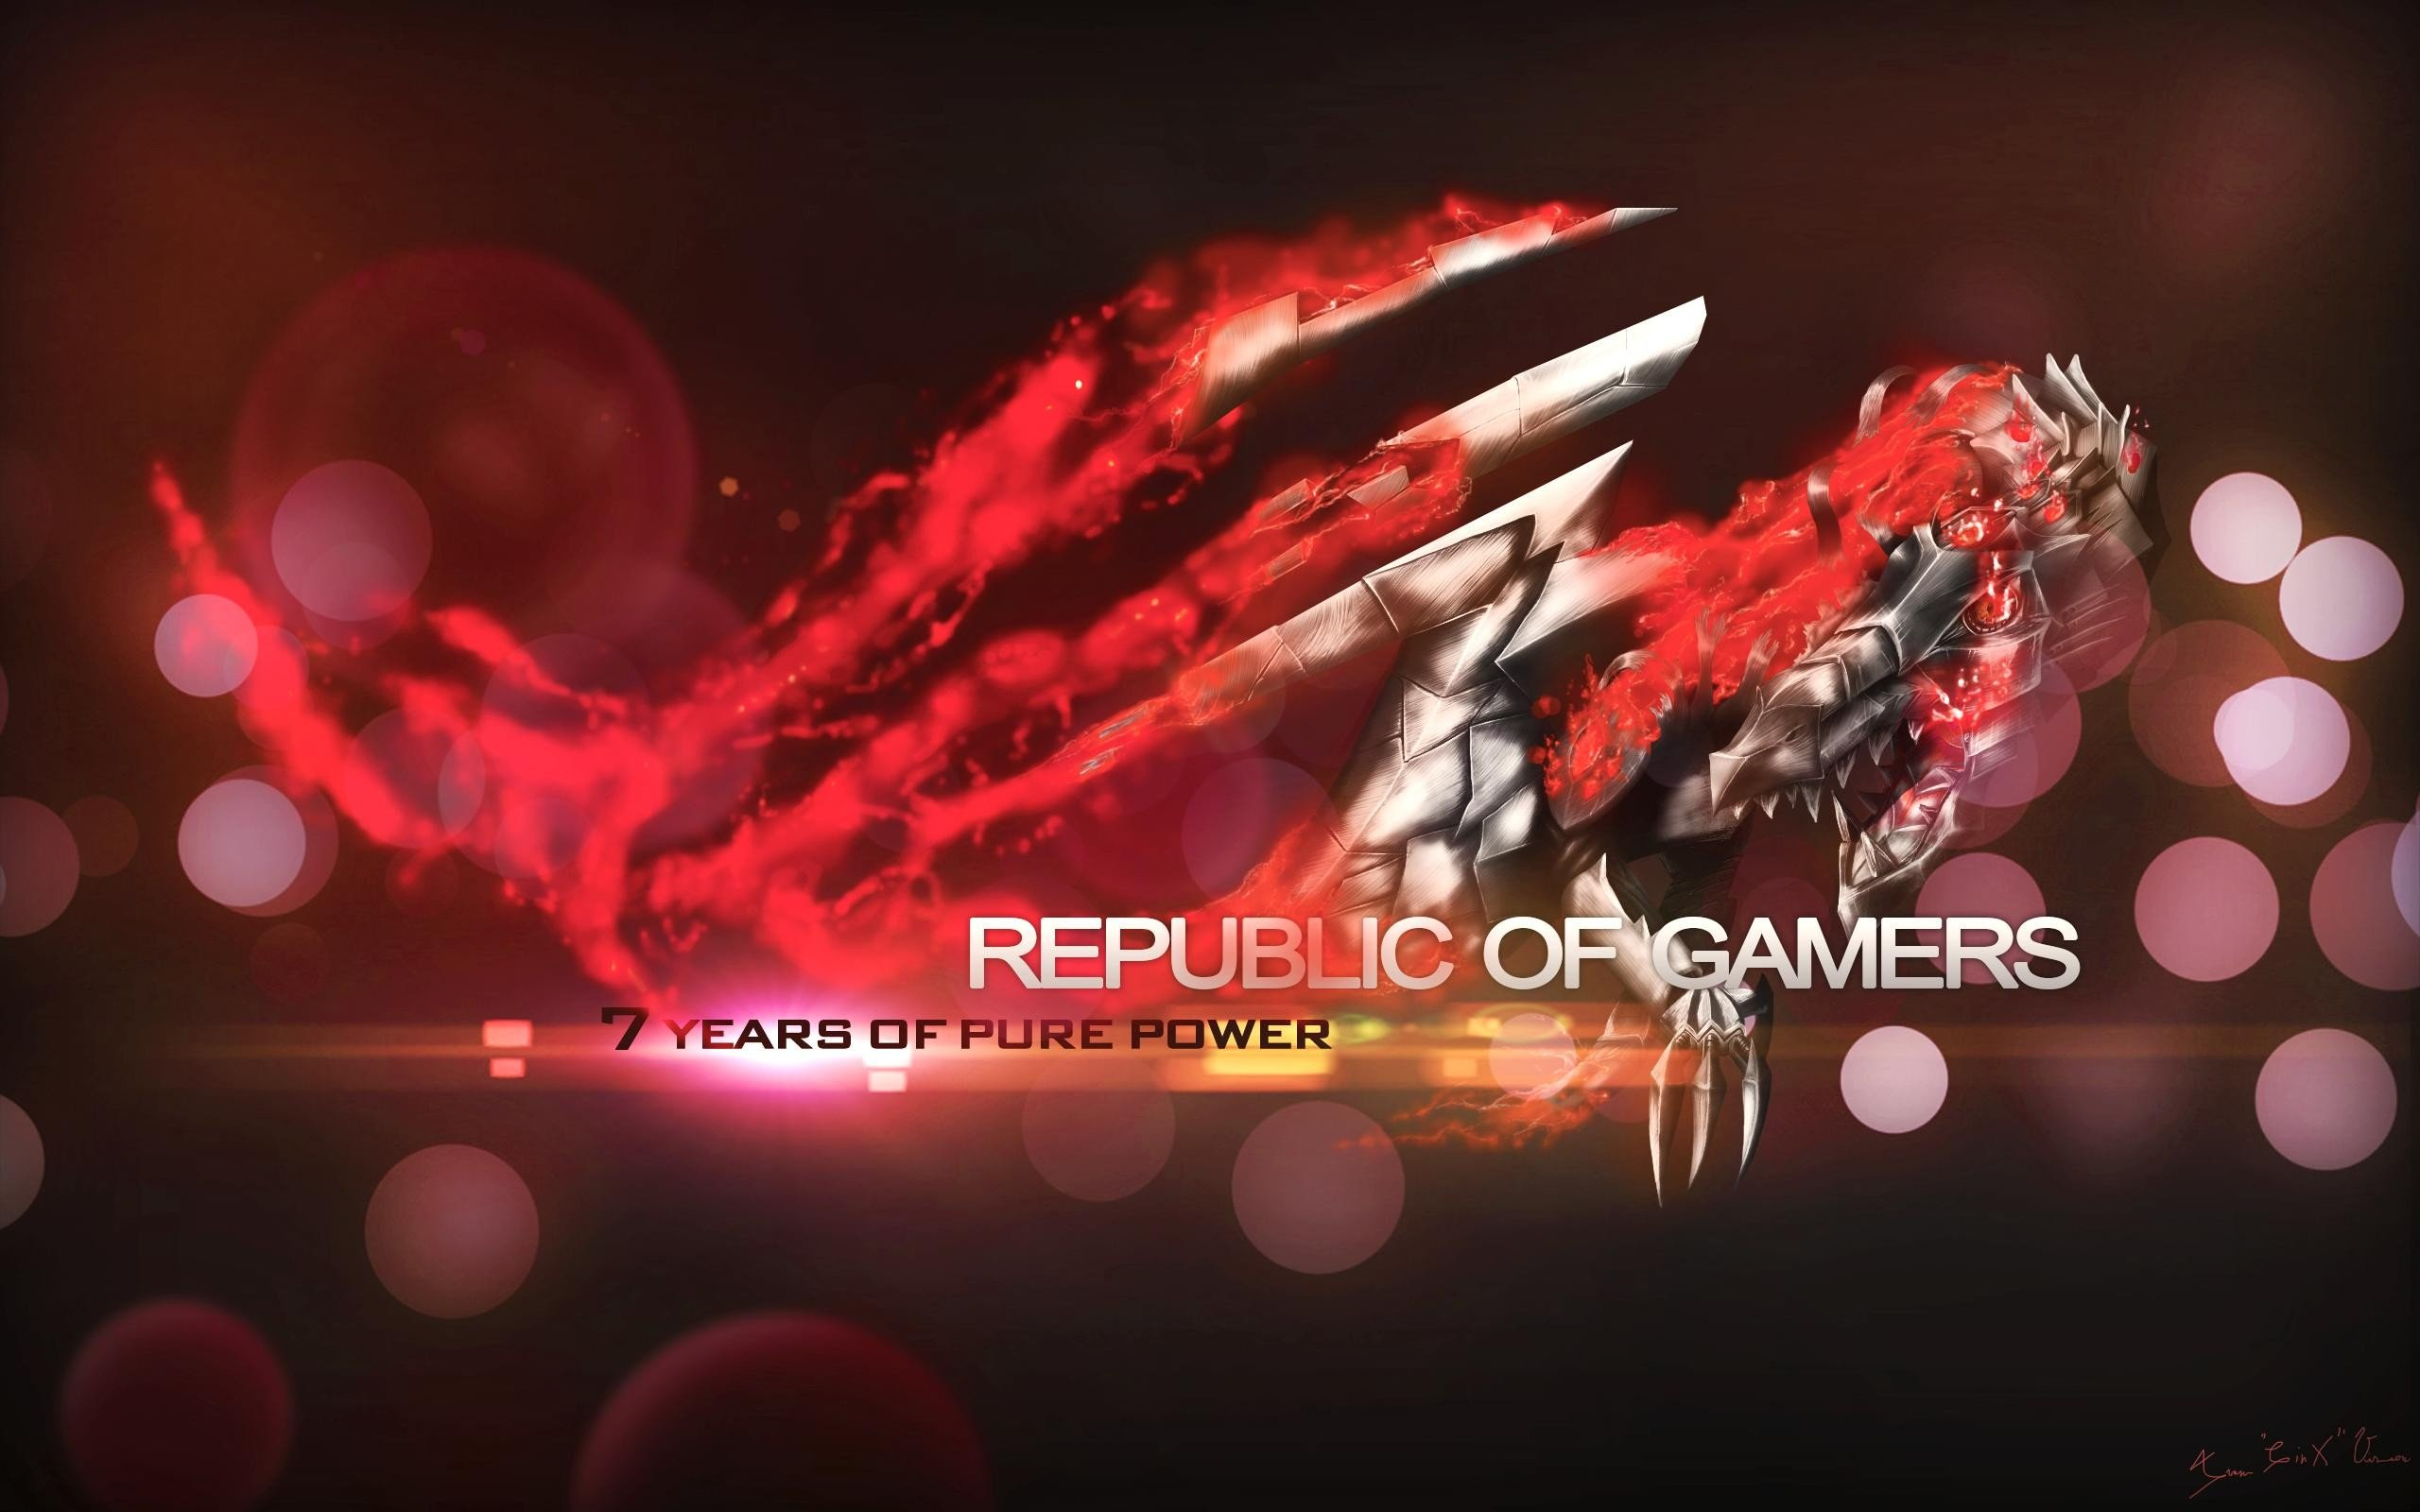 ASUS ROG, Republic Of Gamers, ASUS HD Wallpapers / Desktop